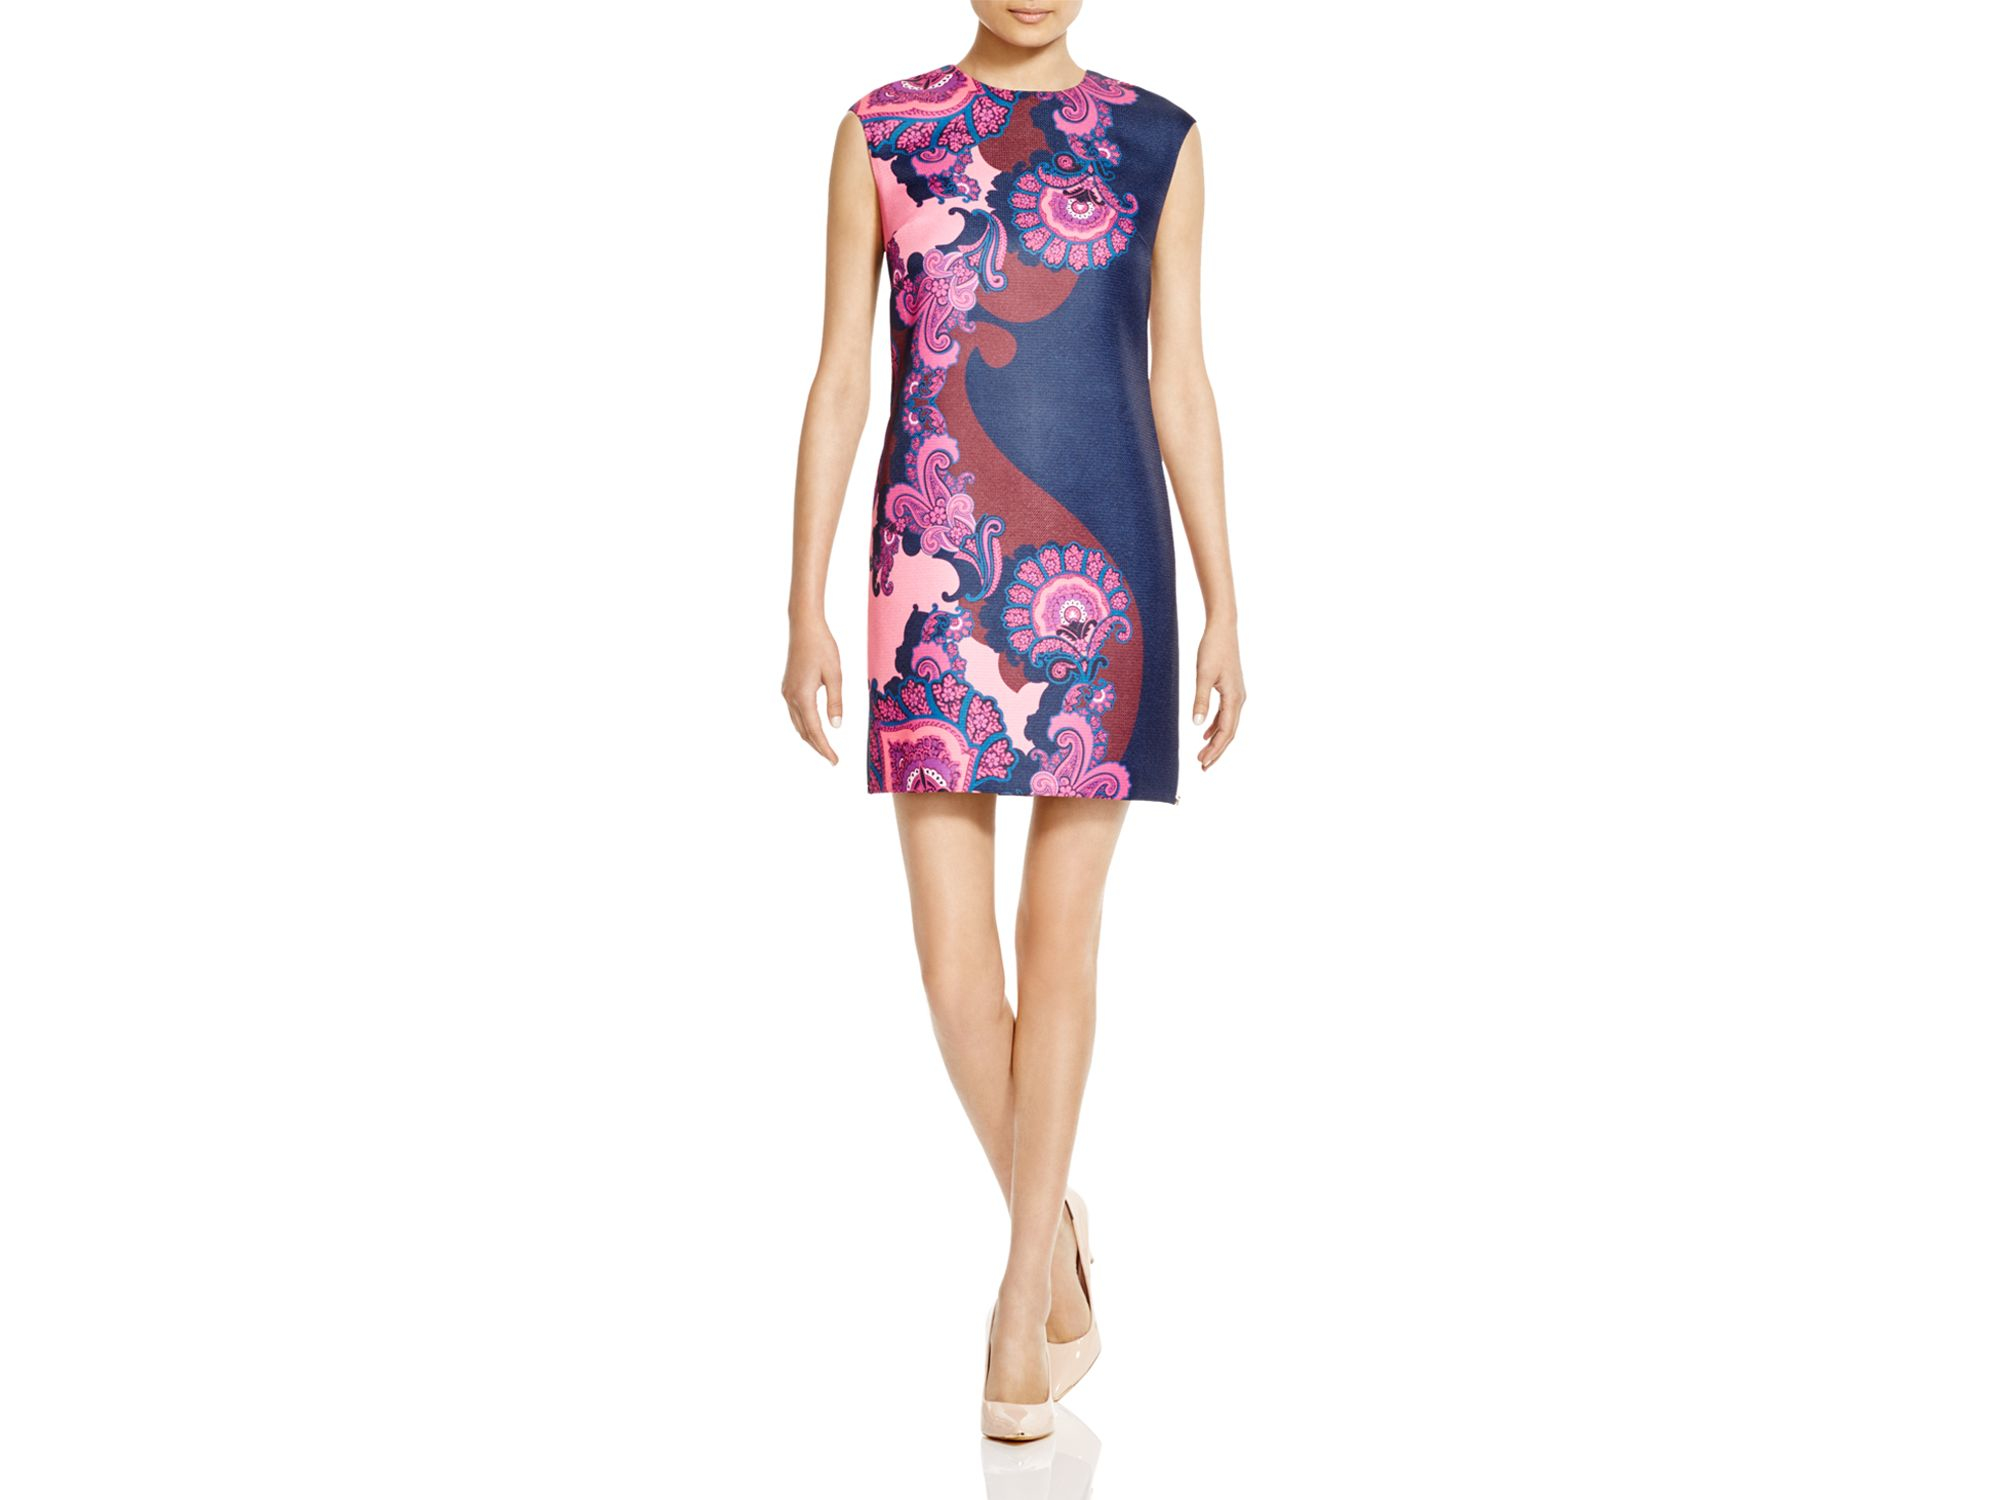 9bfe5c2762e0 Ted Baker Maissey Paisley Shift Dress - Bloomingdale's Exclusive in ...